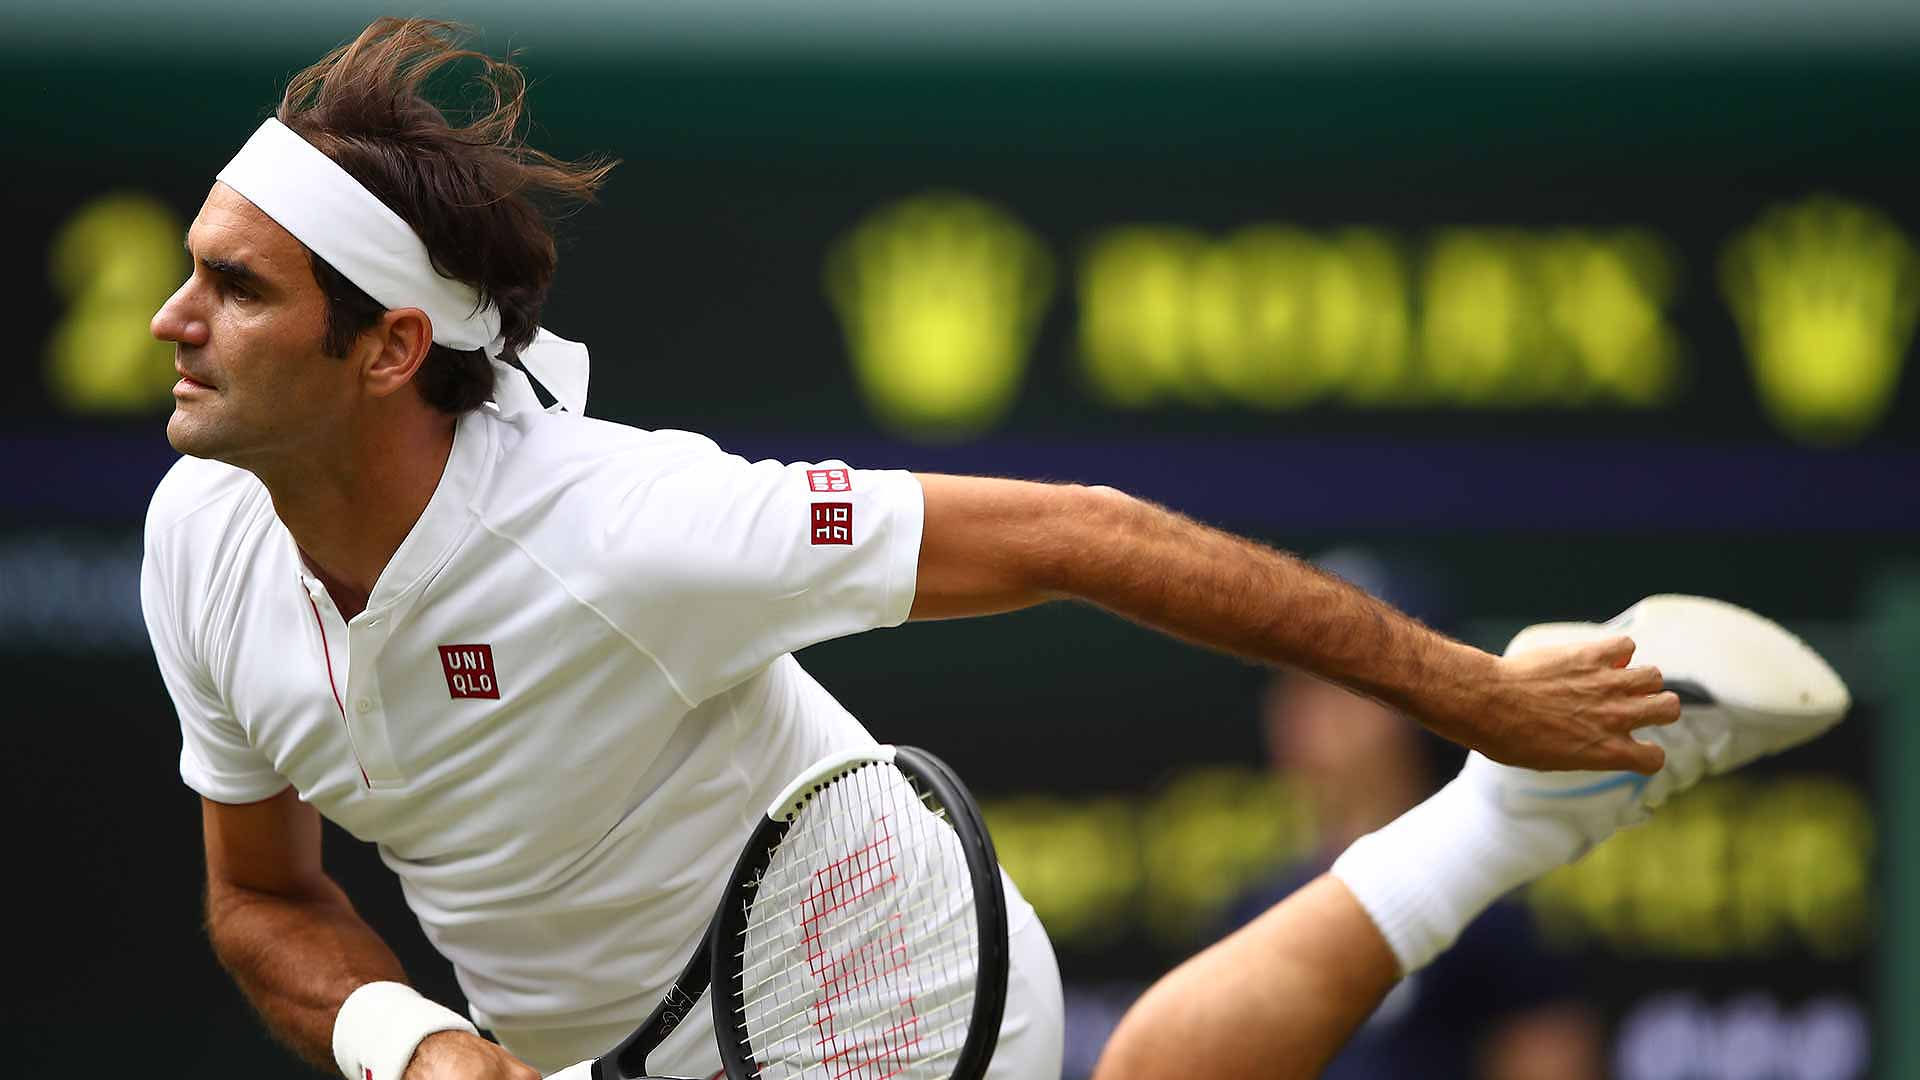 41e197cd7e2 Roger Federer Nearly Perfect As He Rolls Past Lukas Lacko